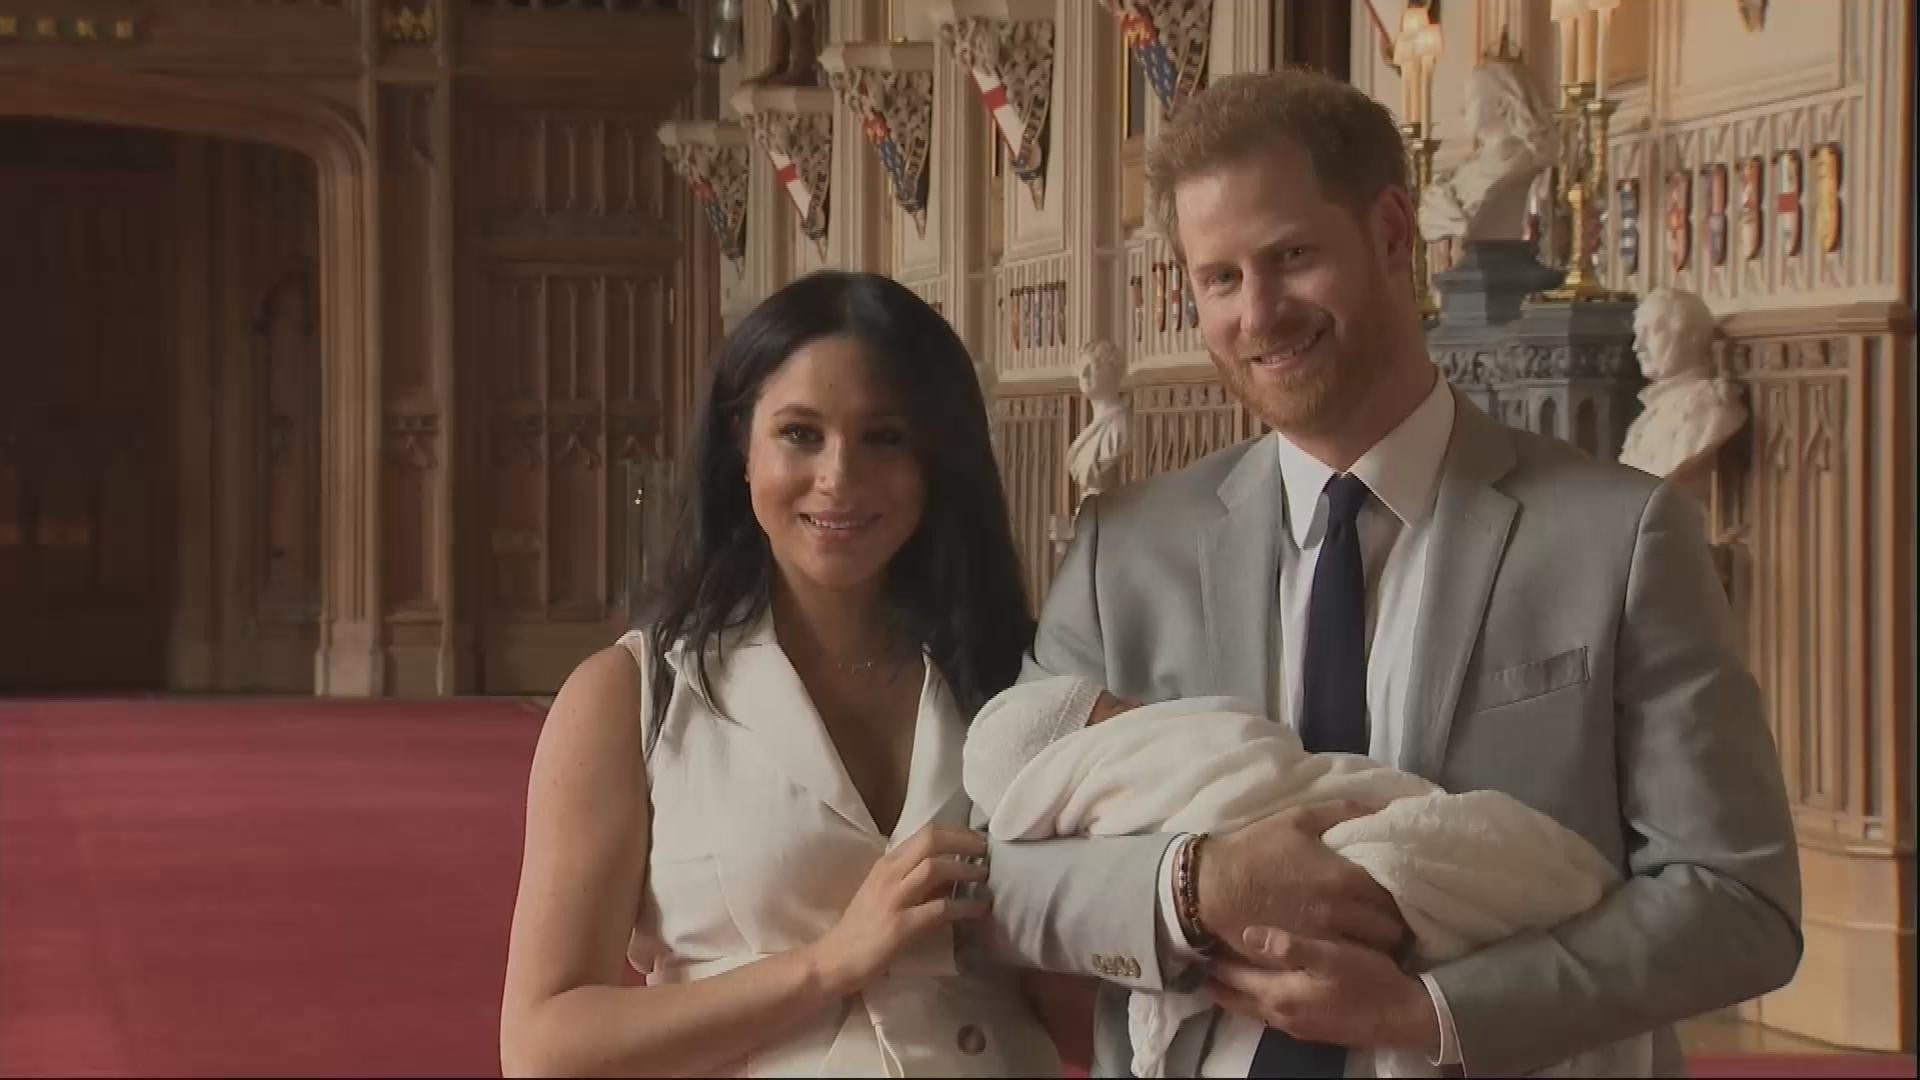 meghan markle and prince harry s son archie has gender neutral flower named after him entertainment tonight inside meghan markle s million dollar pregnancy